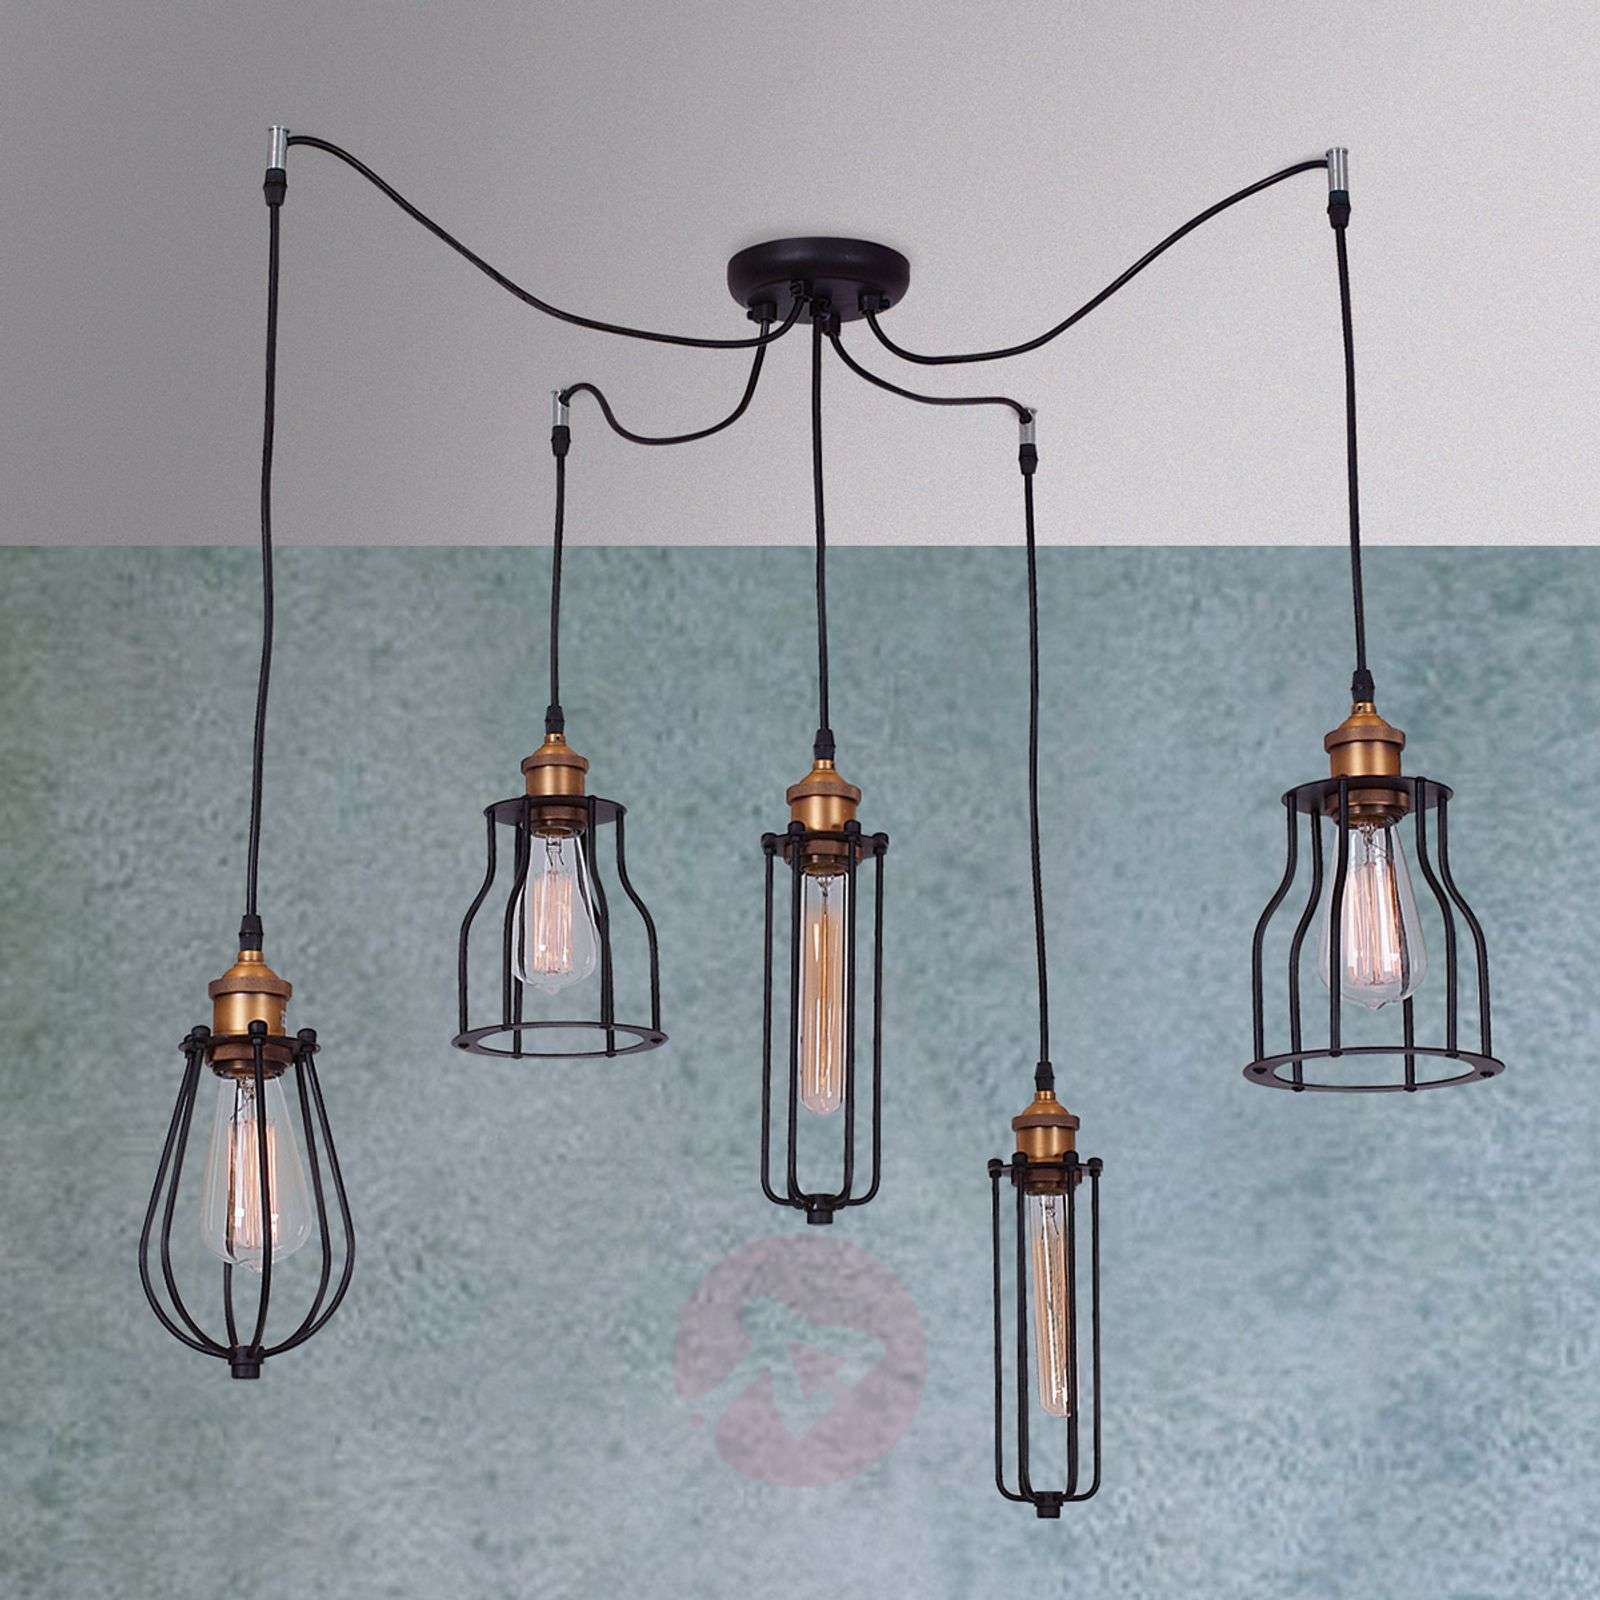 5-light hanging light Ustiko with rustic charm-1054115-01